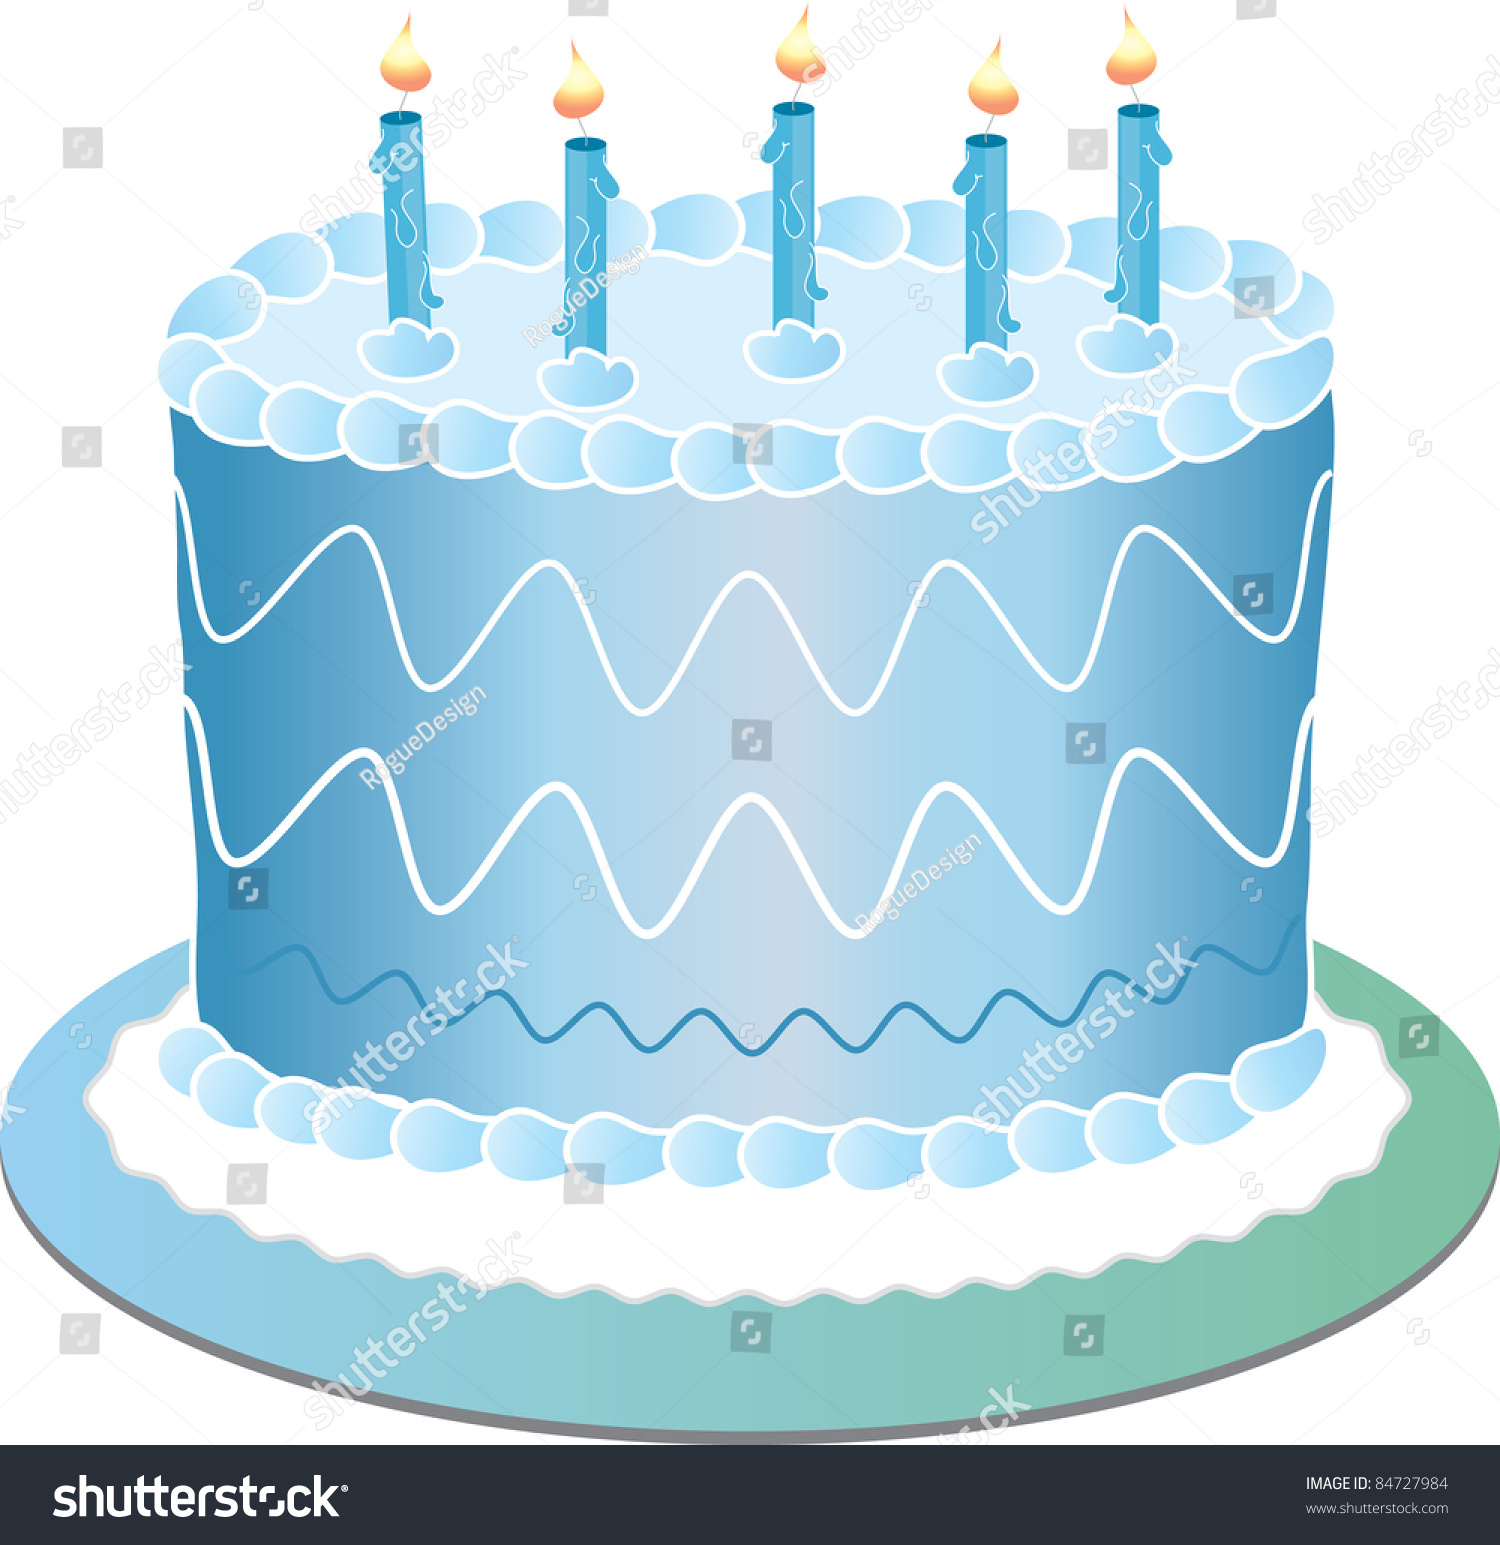 Blue Birthday Cake Clip Art Illustration Blue Birthday Cake Stock Illustration 84727984